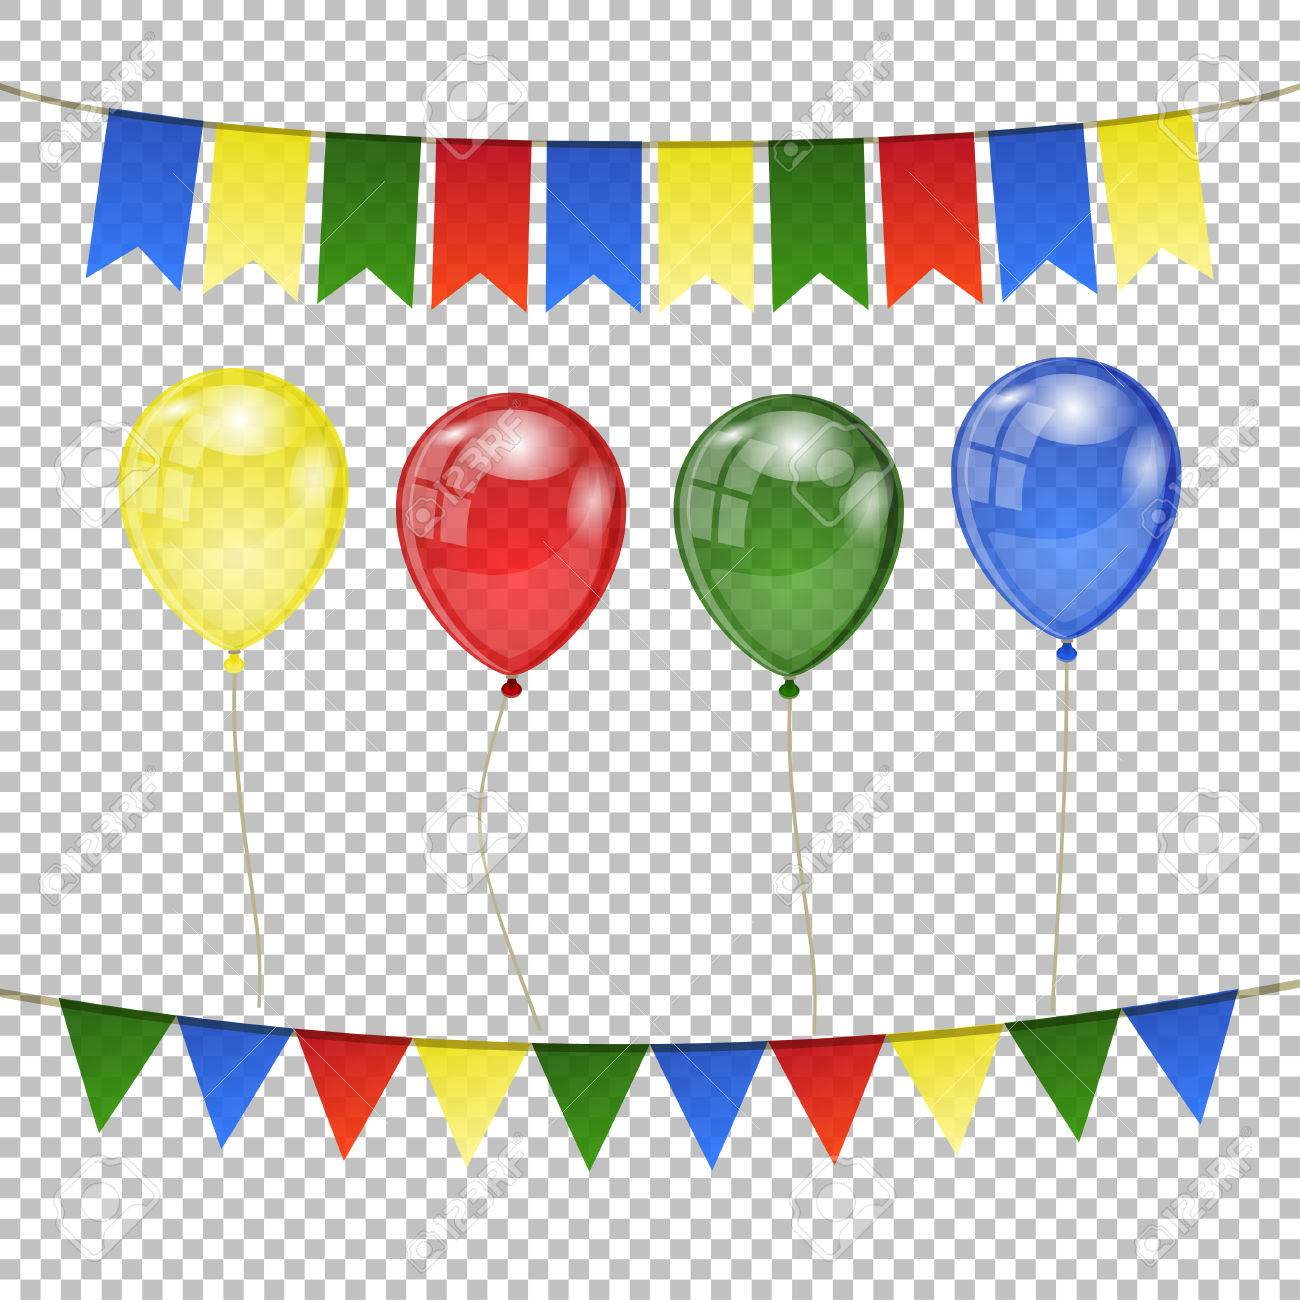 Set Of Colorful Balloons And Flags On Transparent Background